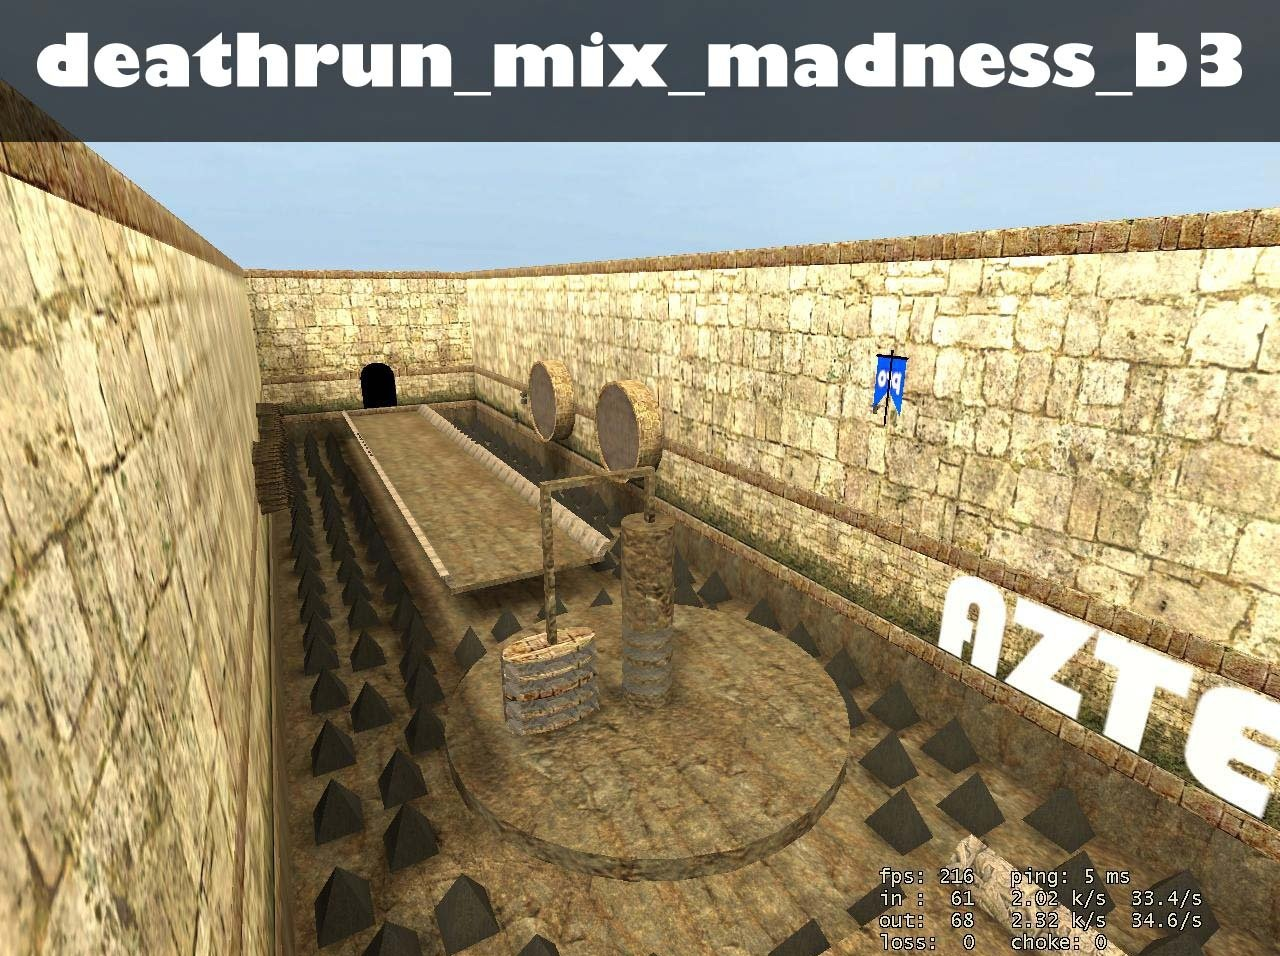 deathrun_mix_madness_b3